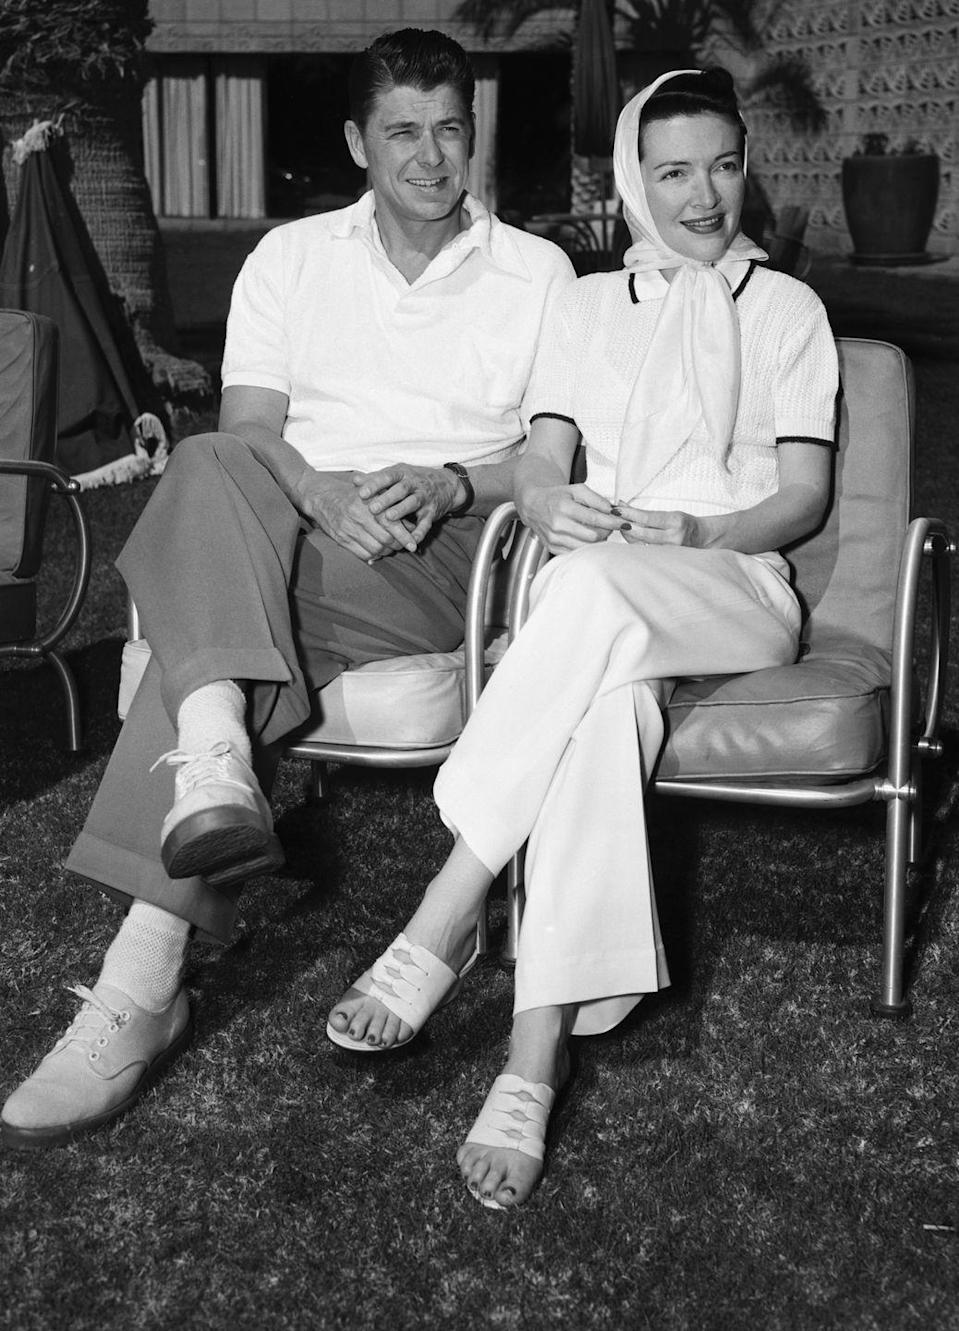 <p>The couple spent their honeymoon at the Arizona Biltmore Hotel in Phoenix. Nancy was secretly pregnant with their first child, Patricia Ann Reagan (later known as Patti Davis) at the time. </p>